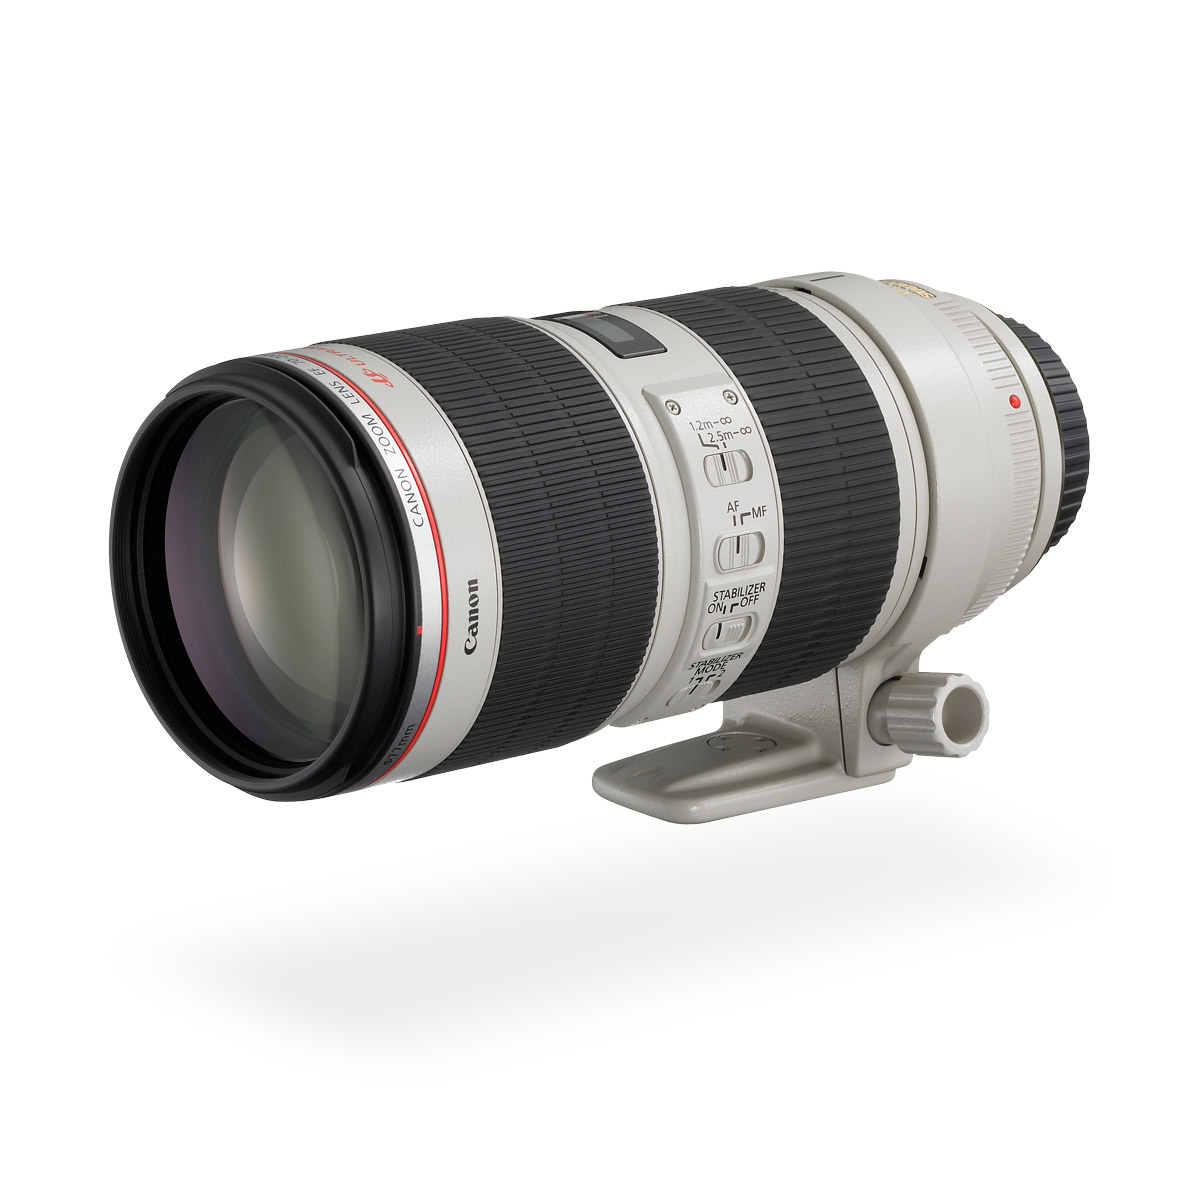 EF 70-200mm f/2.8L IS II USM lens